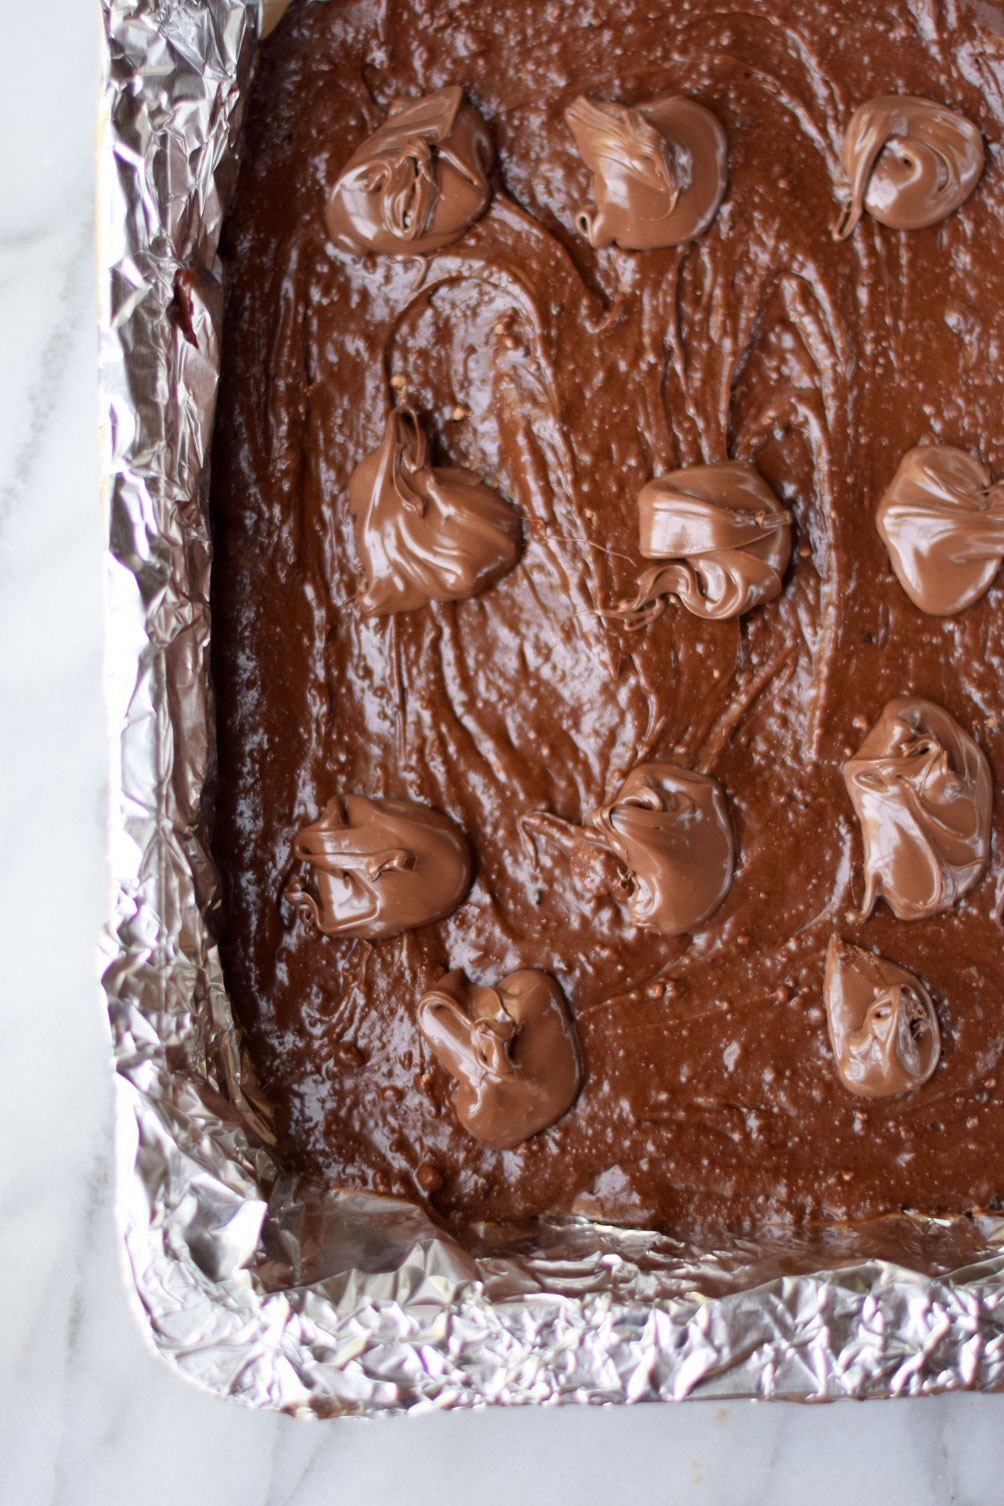 salted caramel nutella brownies are an easy and decadent chocolate dessert recipe from Leslie Musser of one brass fox